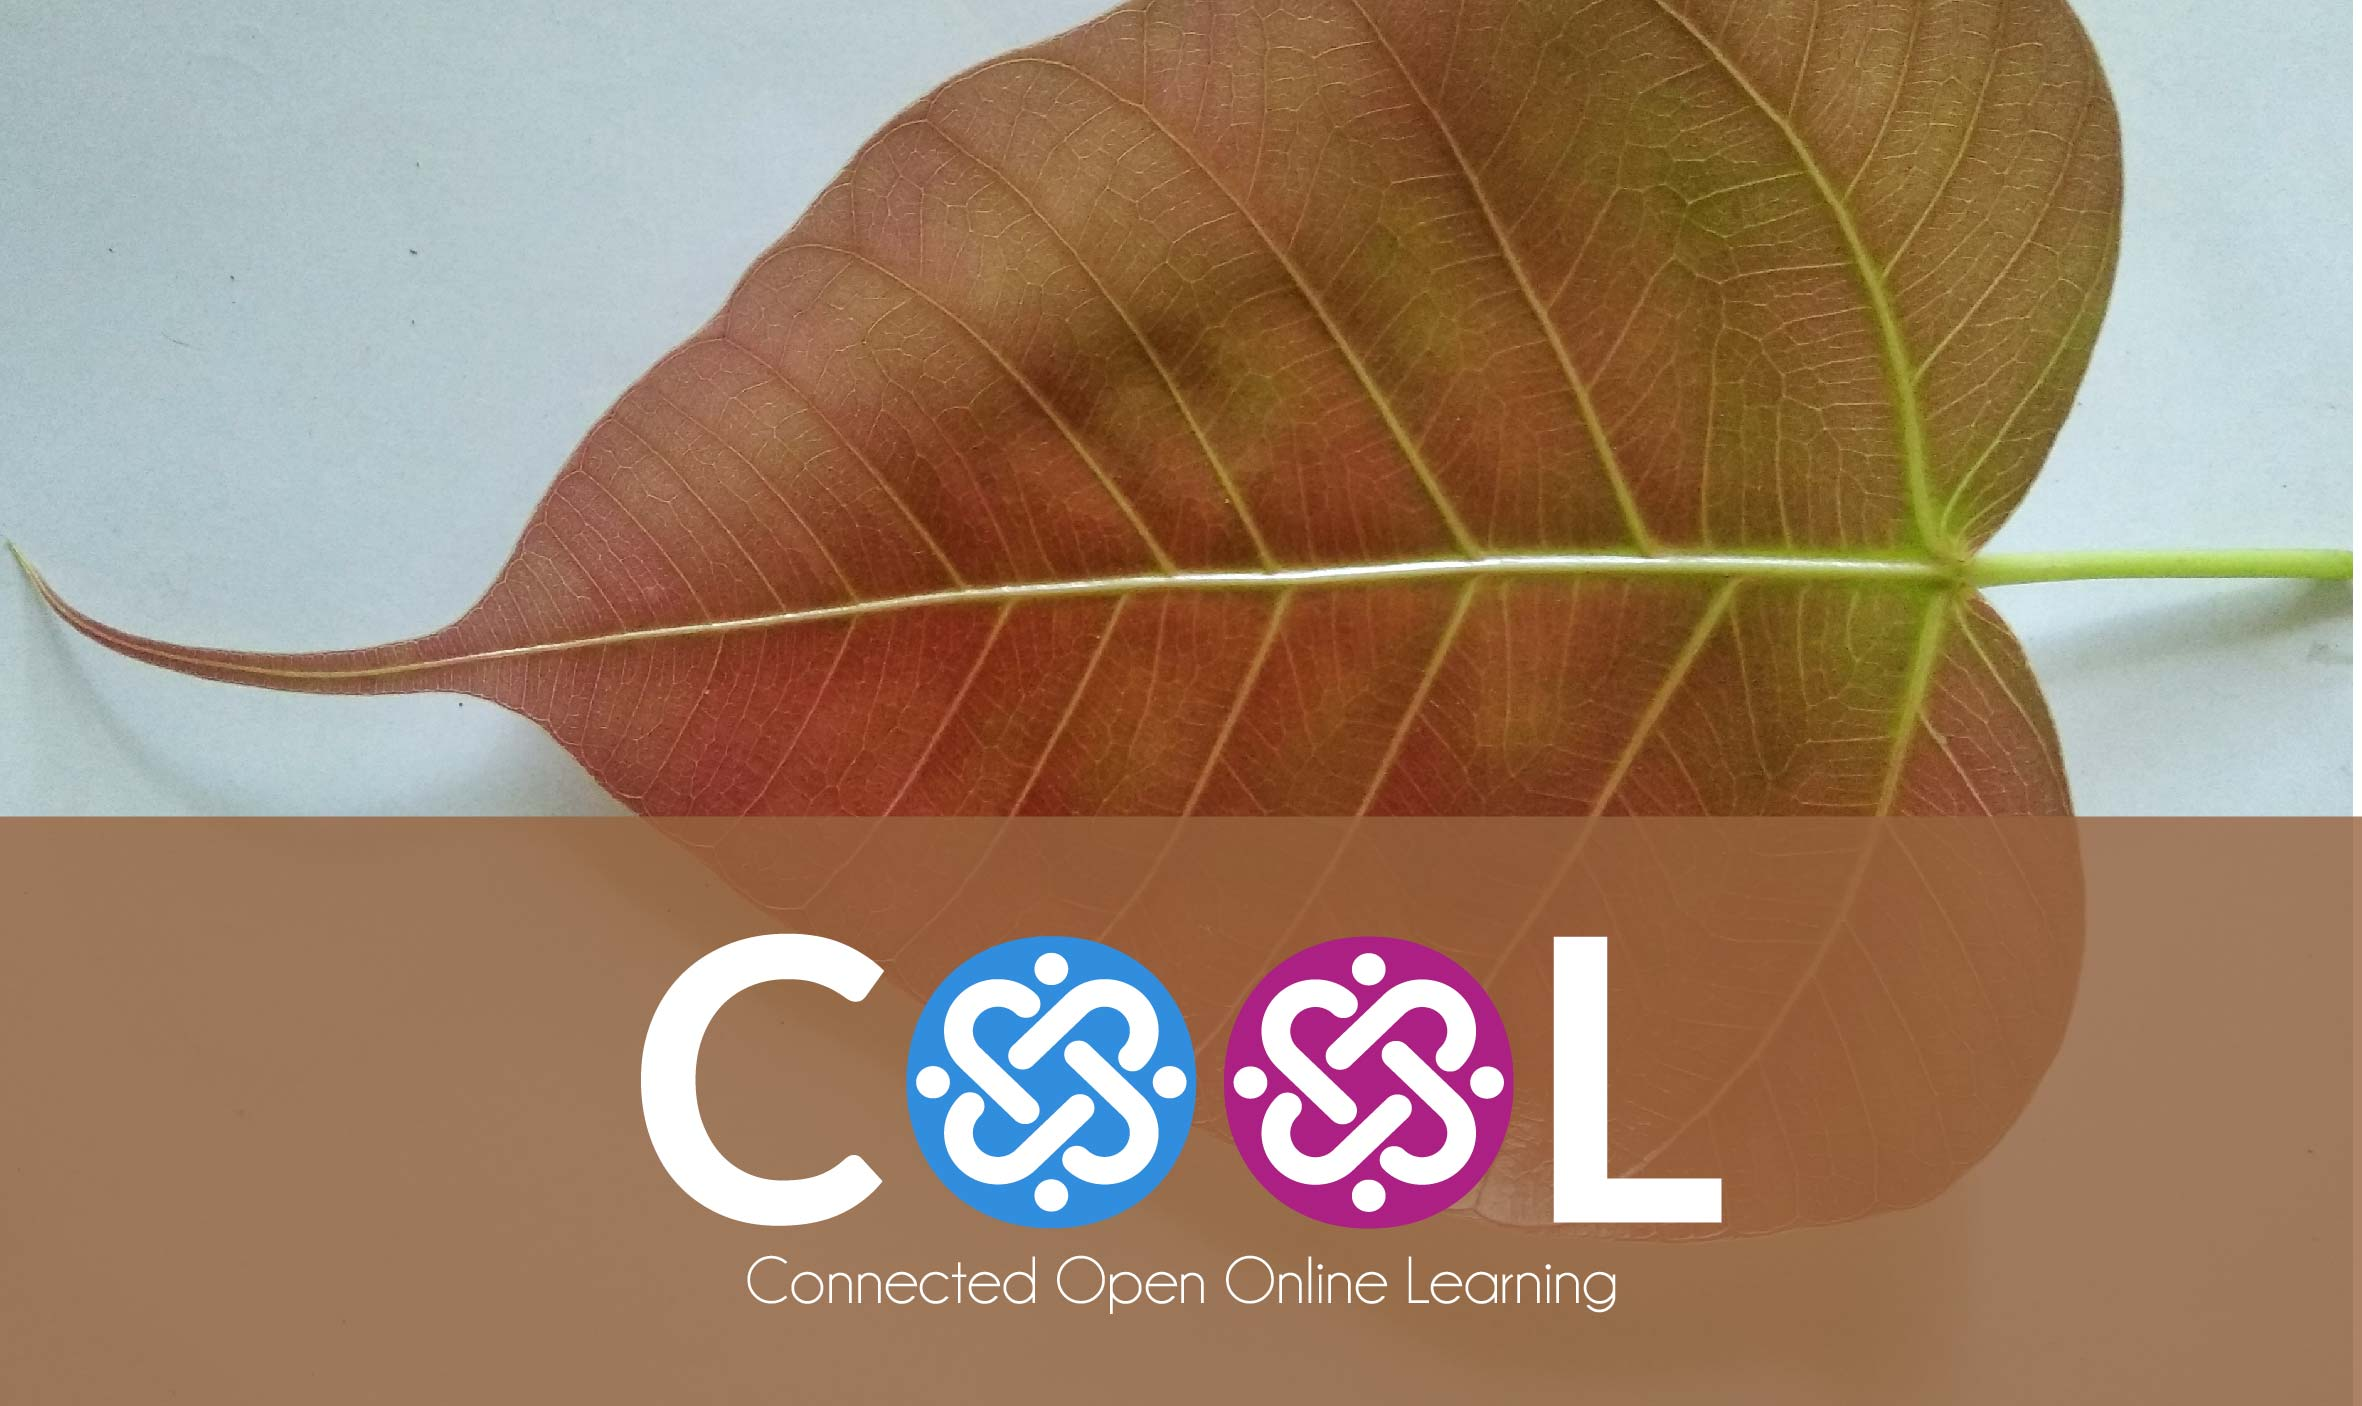 COOLSCI01 - Resources for Science Education - 2020 English 2020_COOL_SCI_EN_01